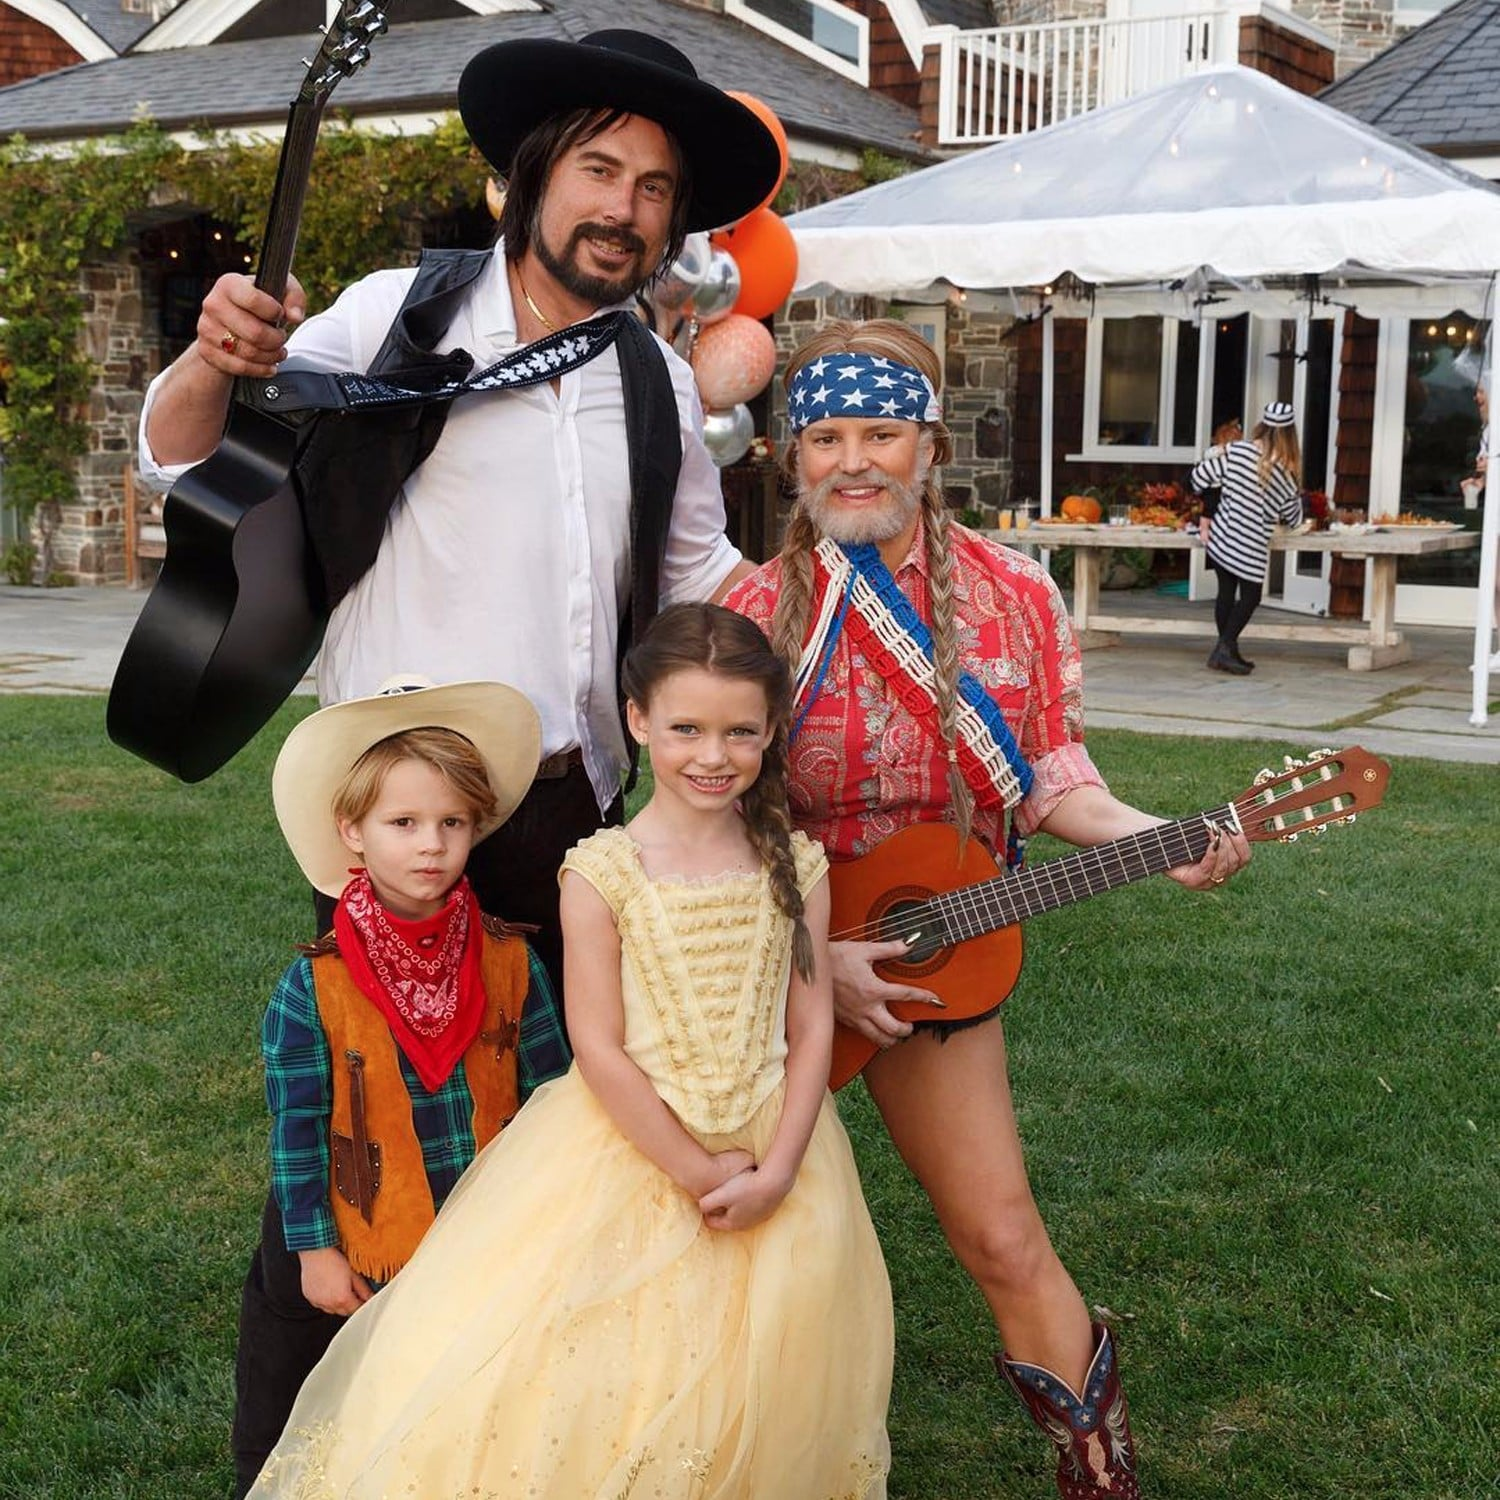 sc 1 st  Popsugar & Jessica Simpson Mommy-Shamed For Halloween Photo | POPSUGAR Moms